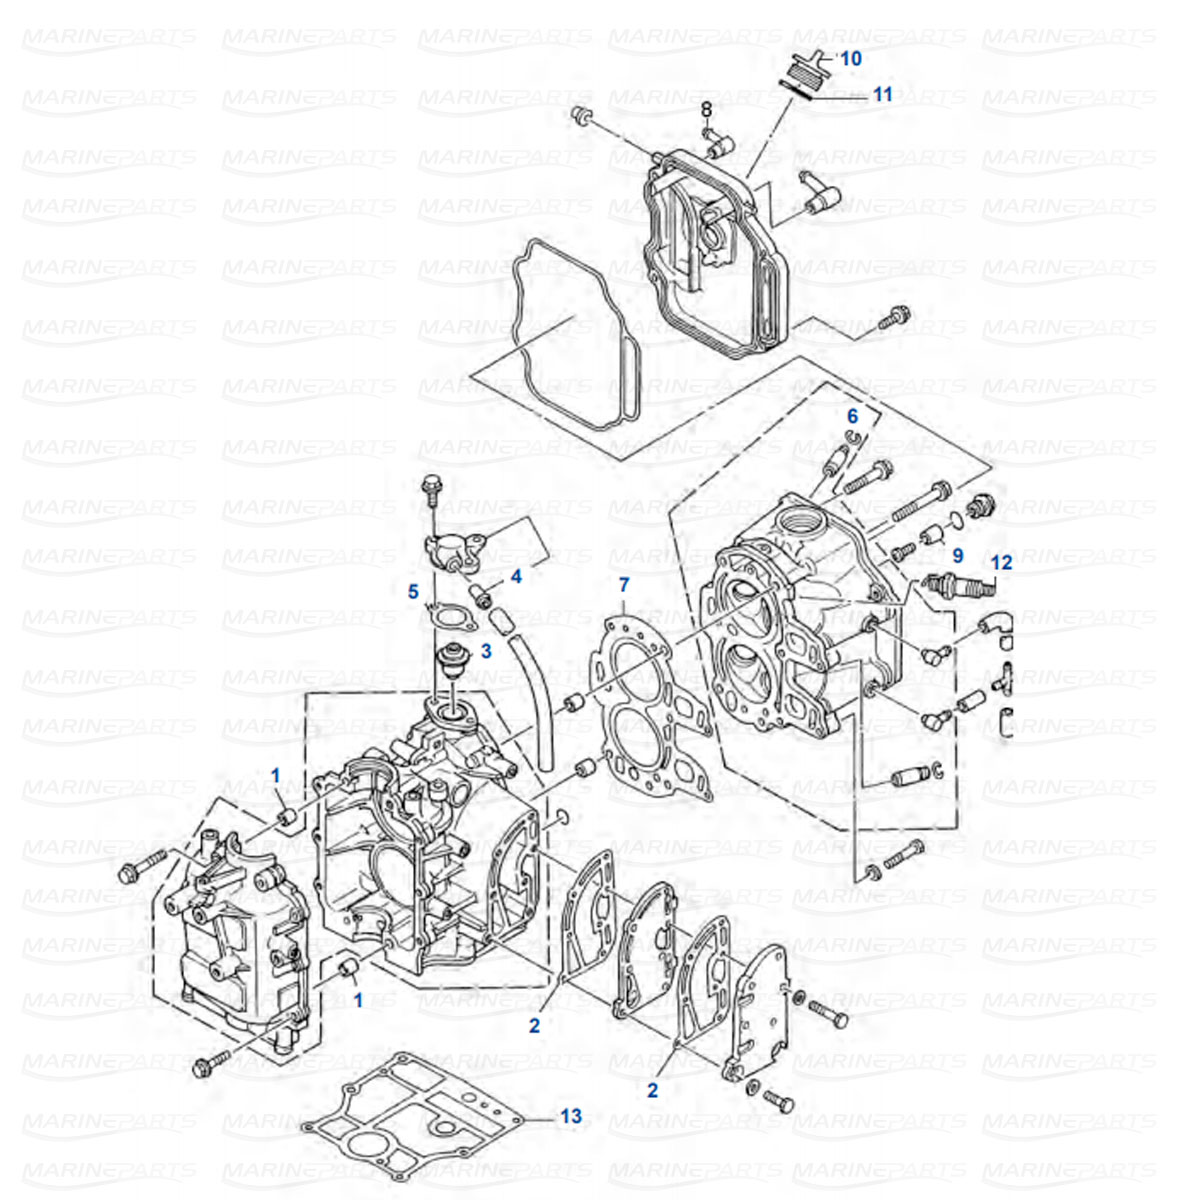 Cylinder Head Yamaha F8AM/BM/B/BE, F9.9 AE/AM/B/BE/BMH/ELH (1985-1999)